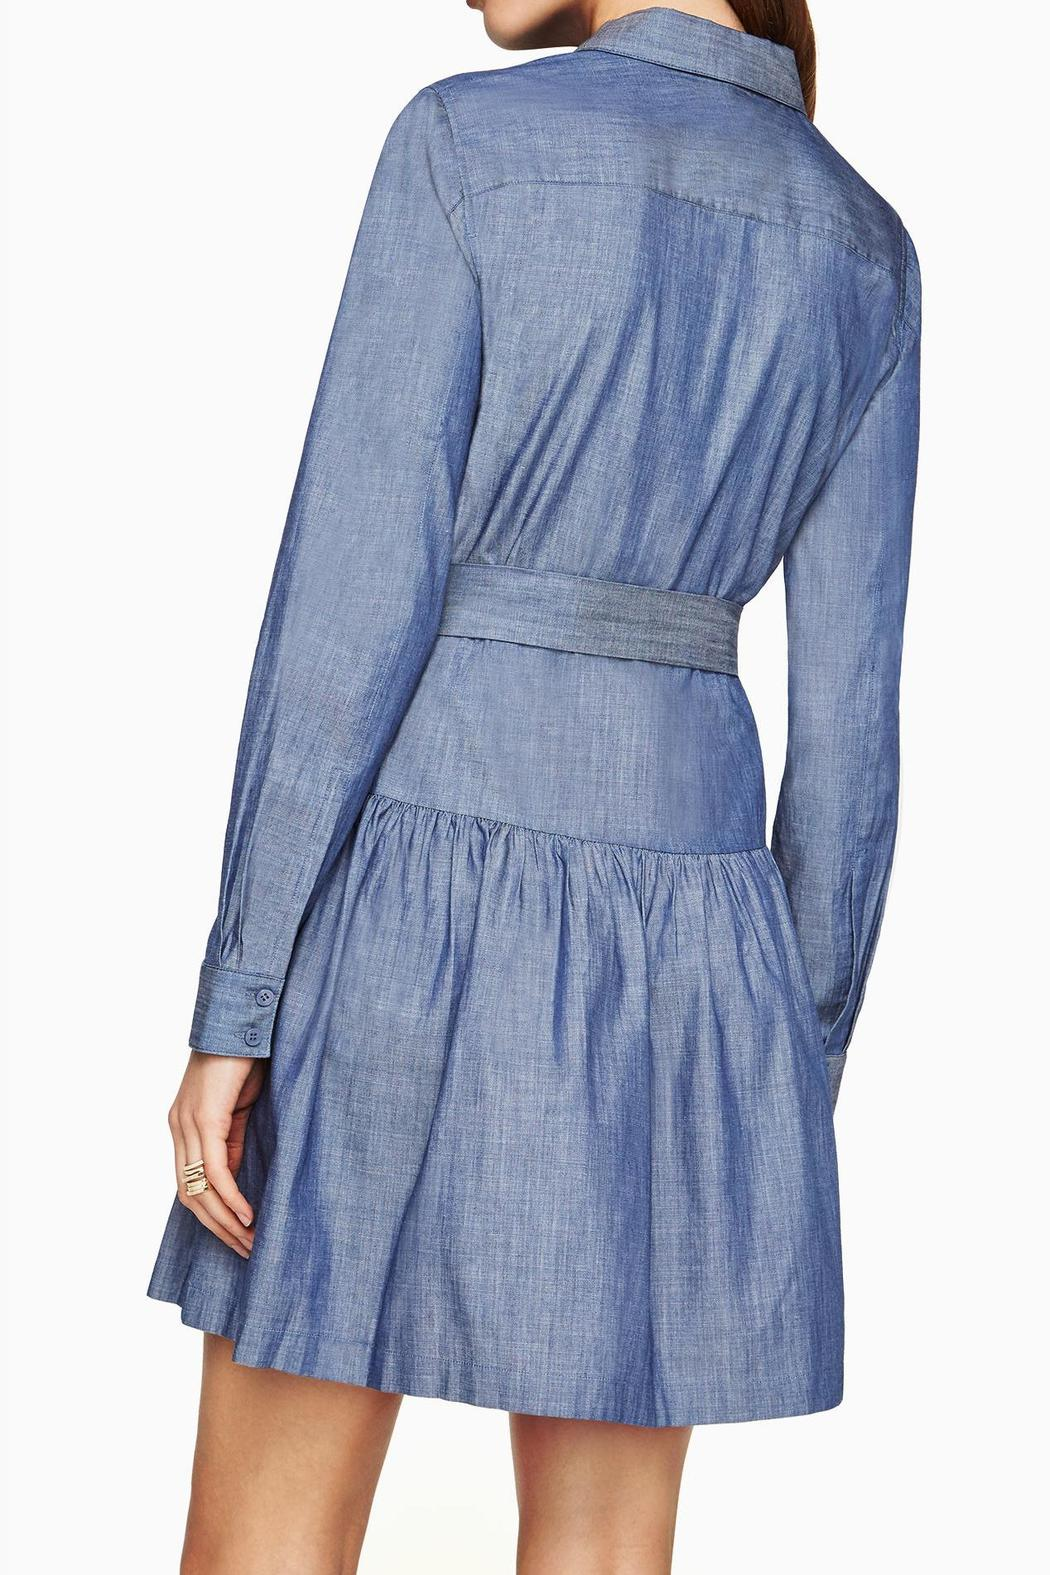 BCBG Max Azria Chambray Twill Dress - Front Full Image